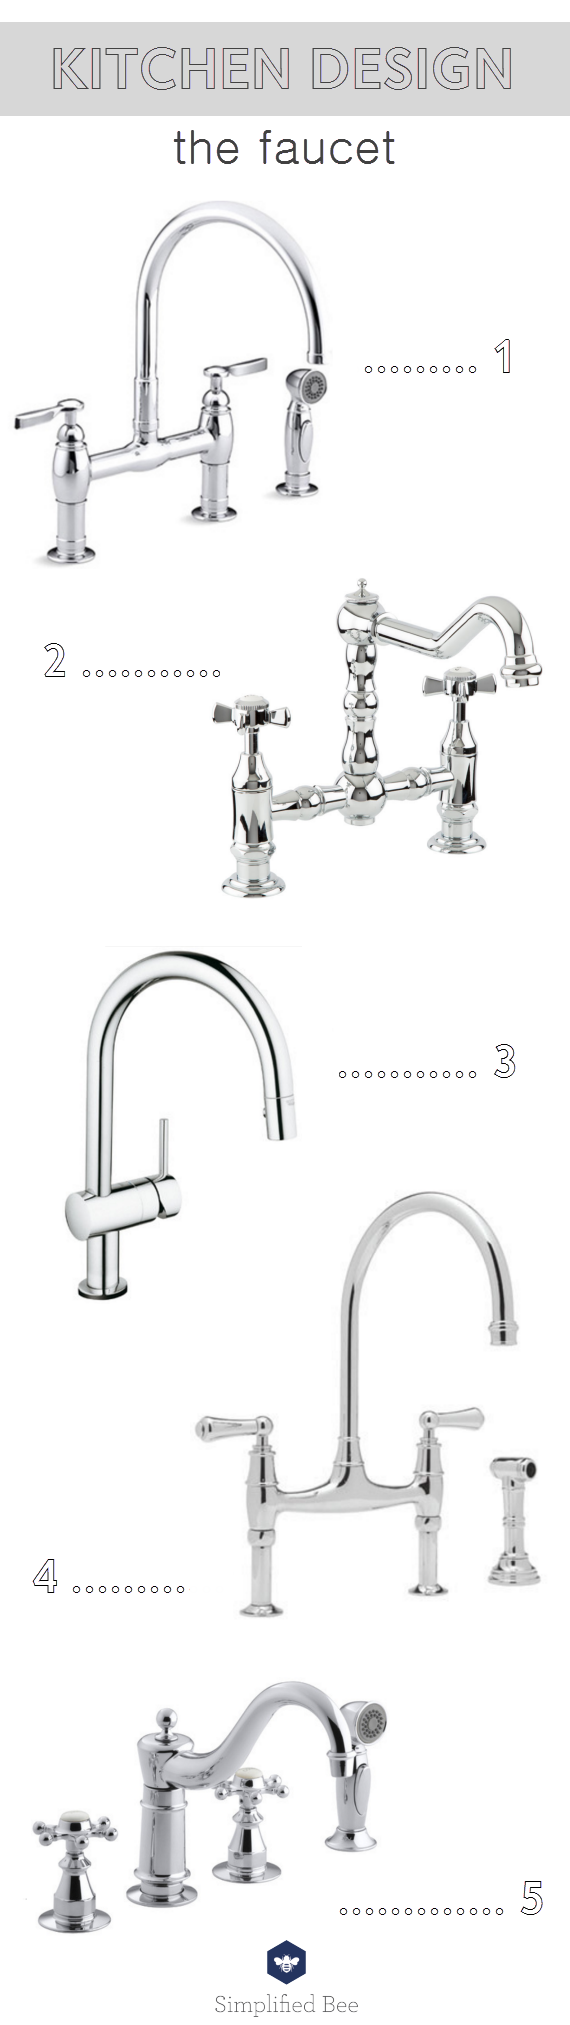 kitchen faucet round-up // @simplifiedbee